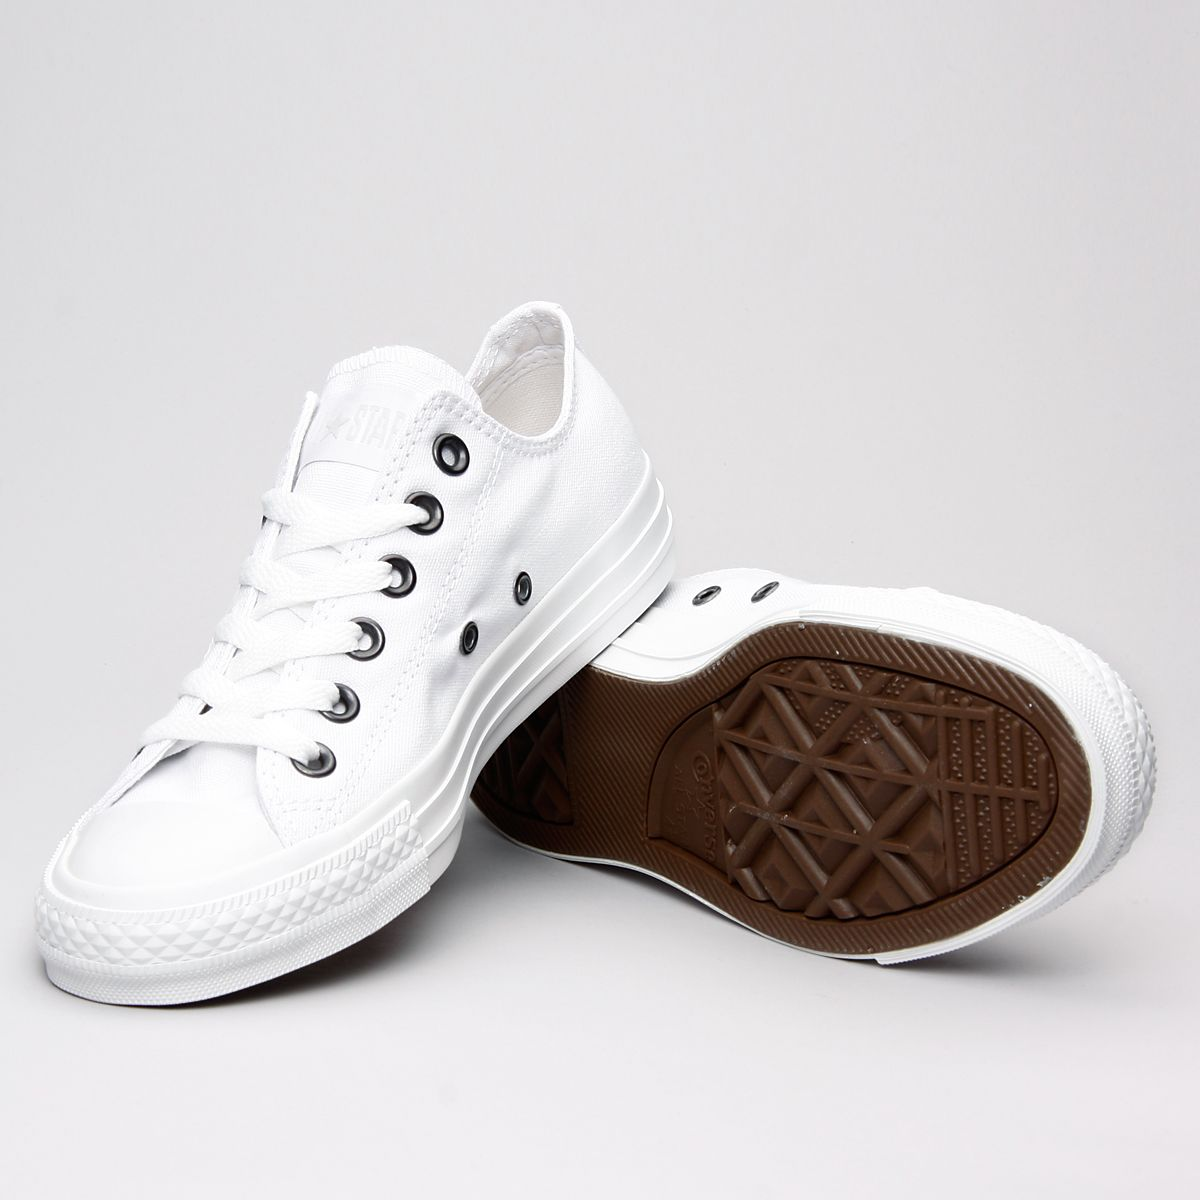 First Uncertain Berri  Converse As Ox White Monochrome 1U647 - Karltex | Converse, Monochrome,  Baby shoes